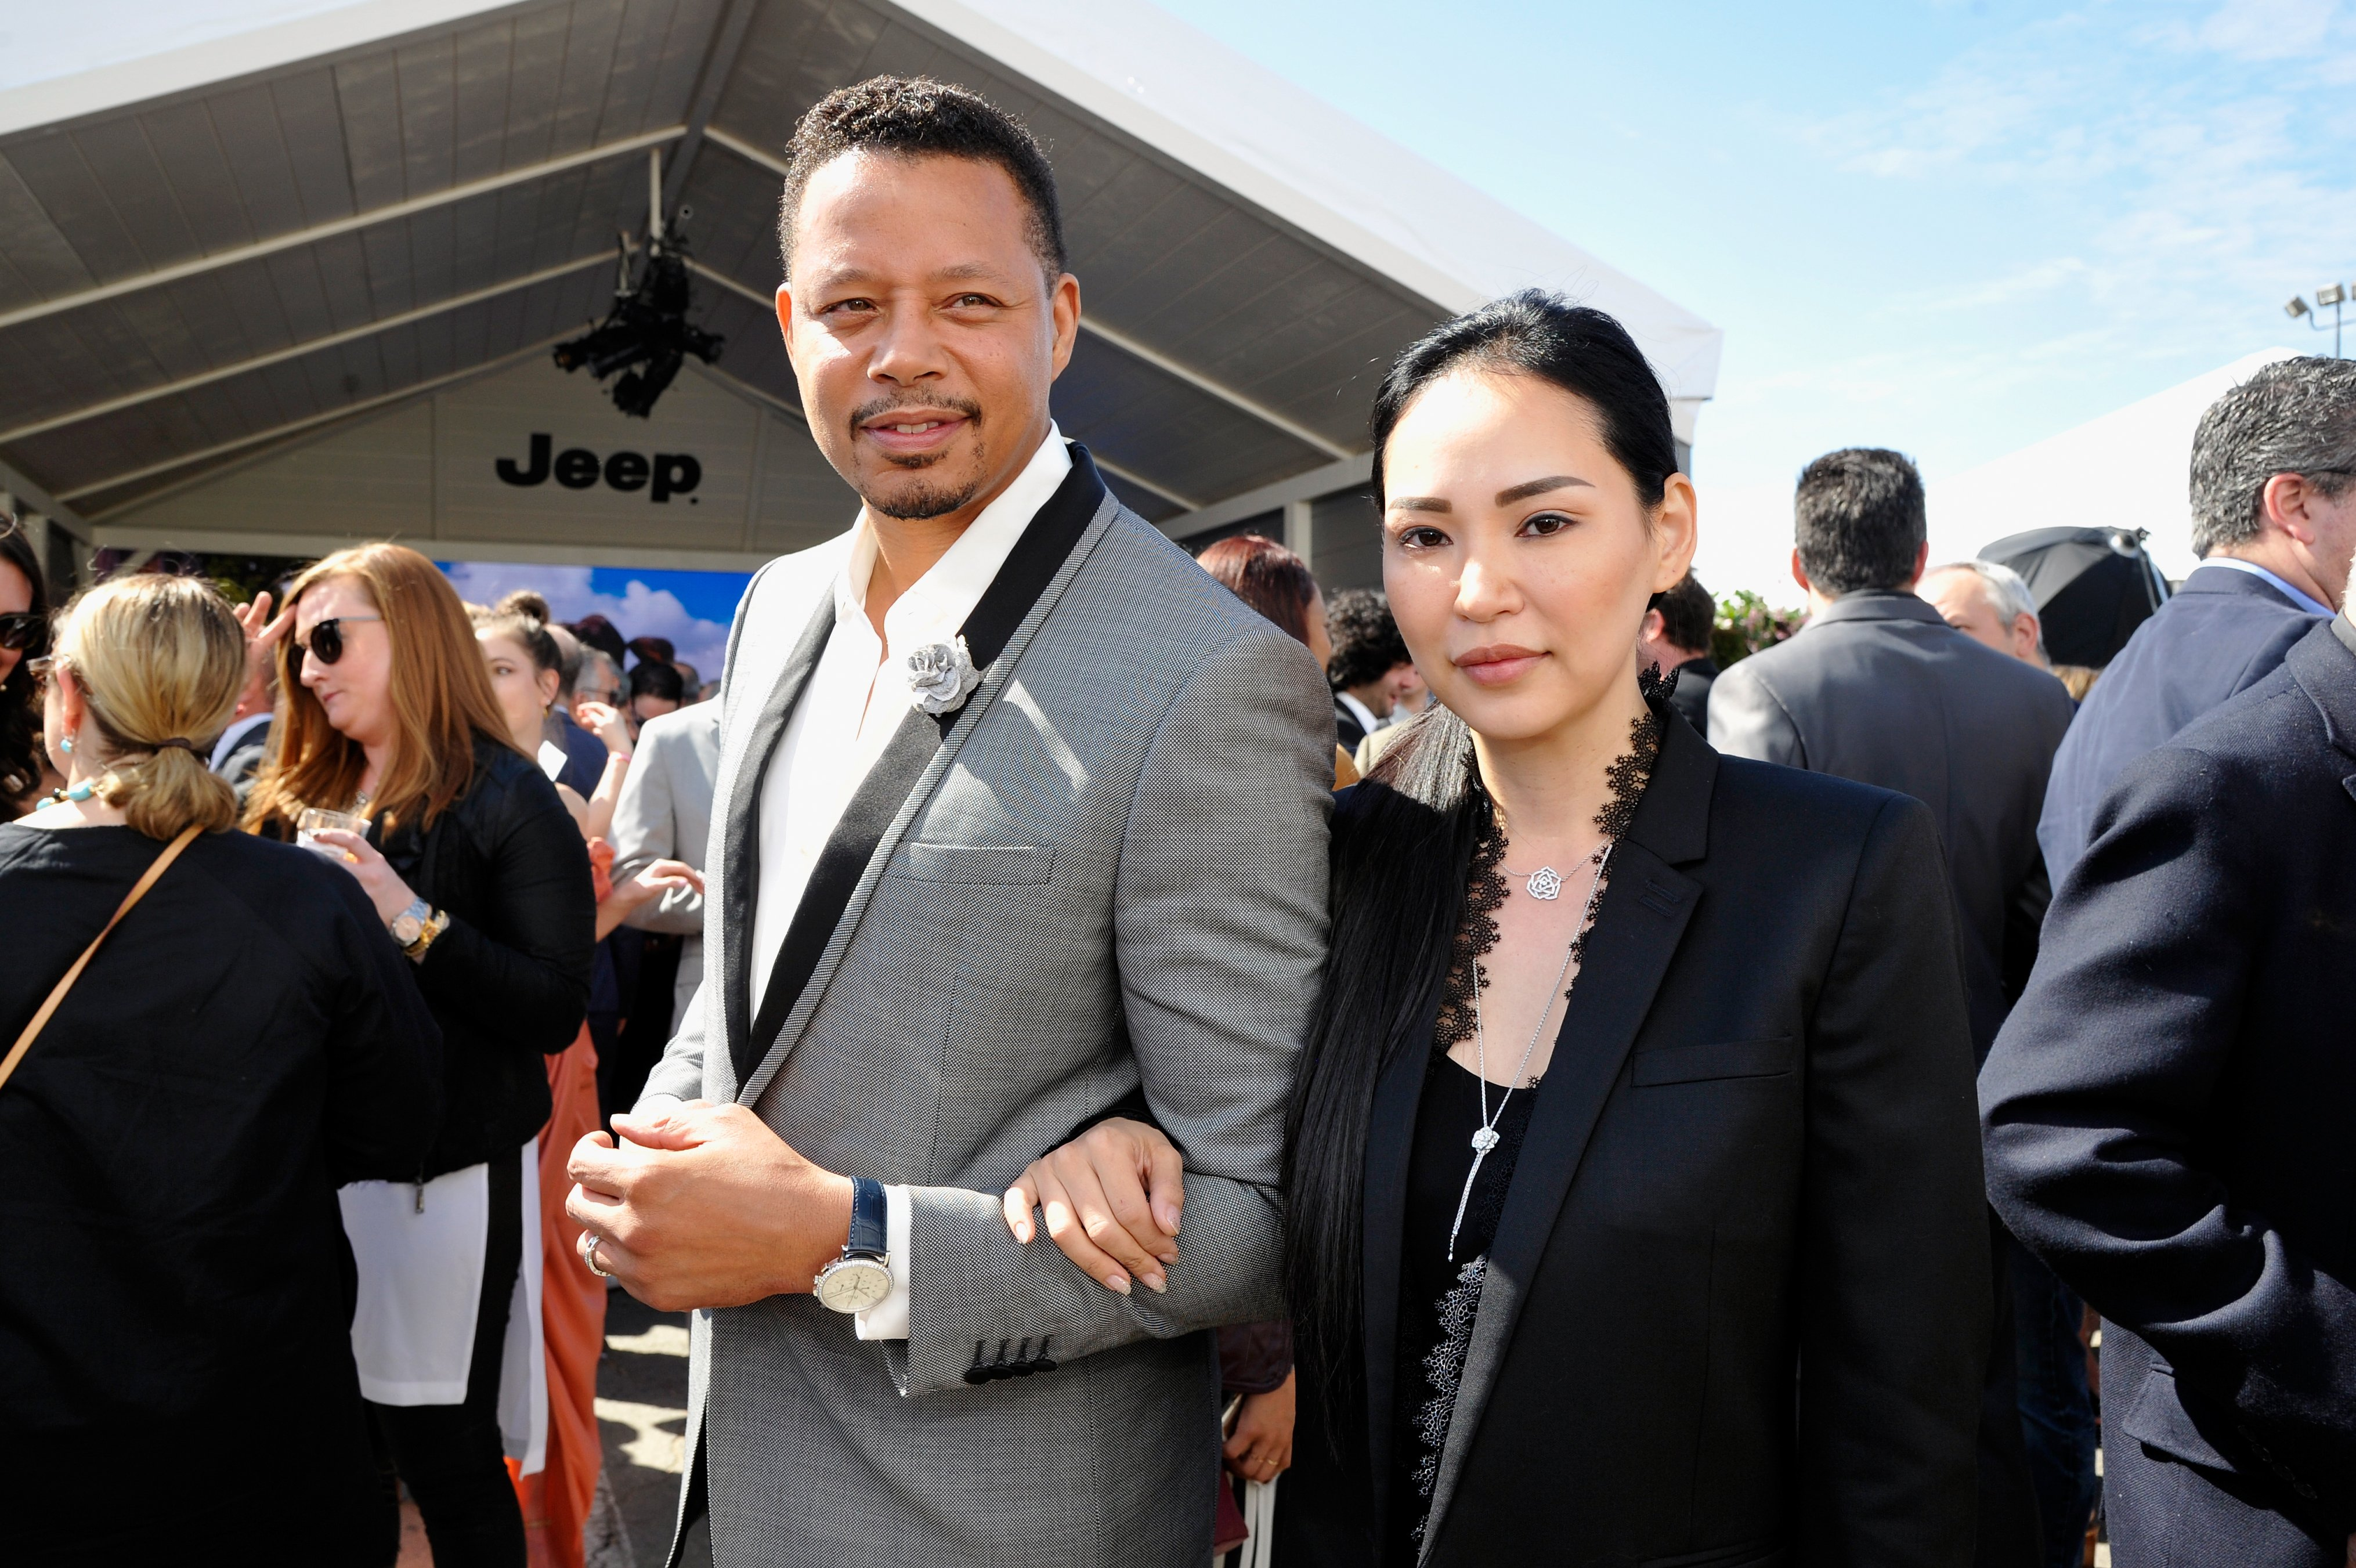 Terrence Howard and Mira Pak at the 2017 Independent Spirit Awards in Santa Monica Pier in February 2017. | Photo: Getty Images